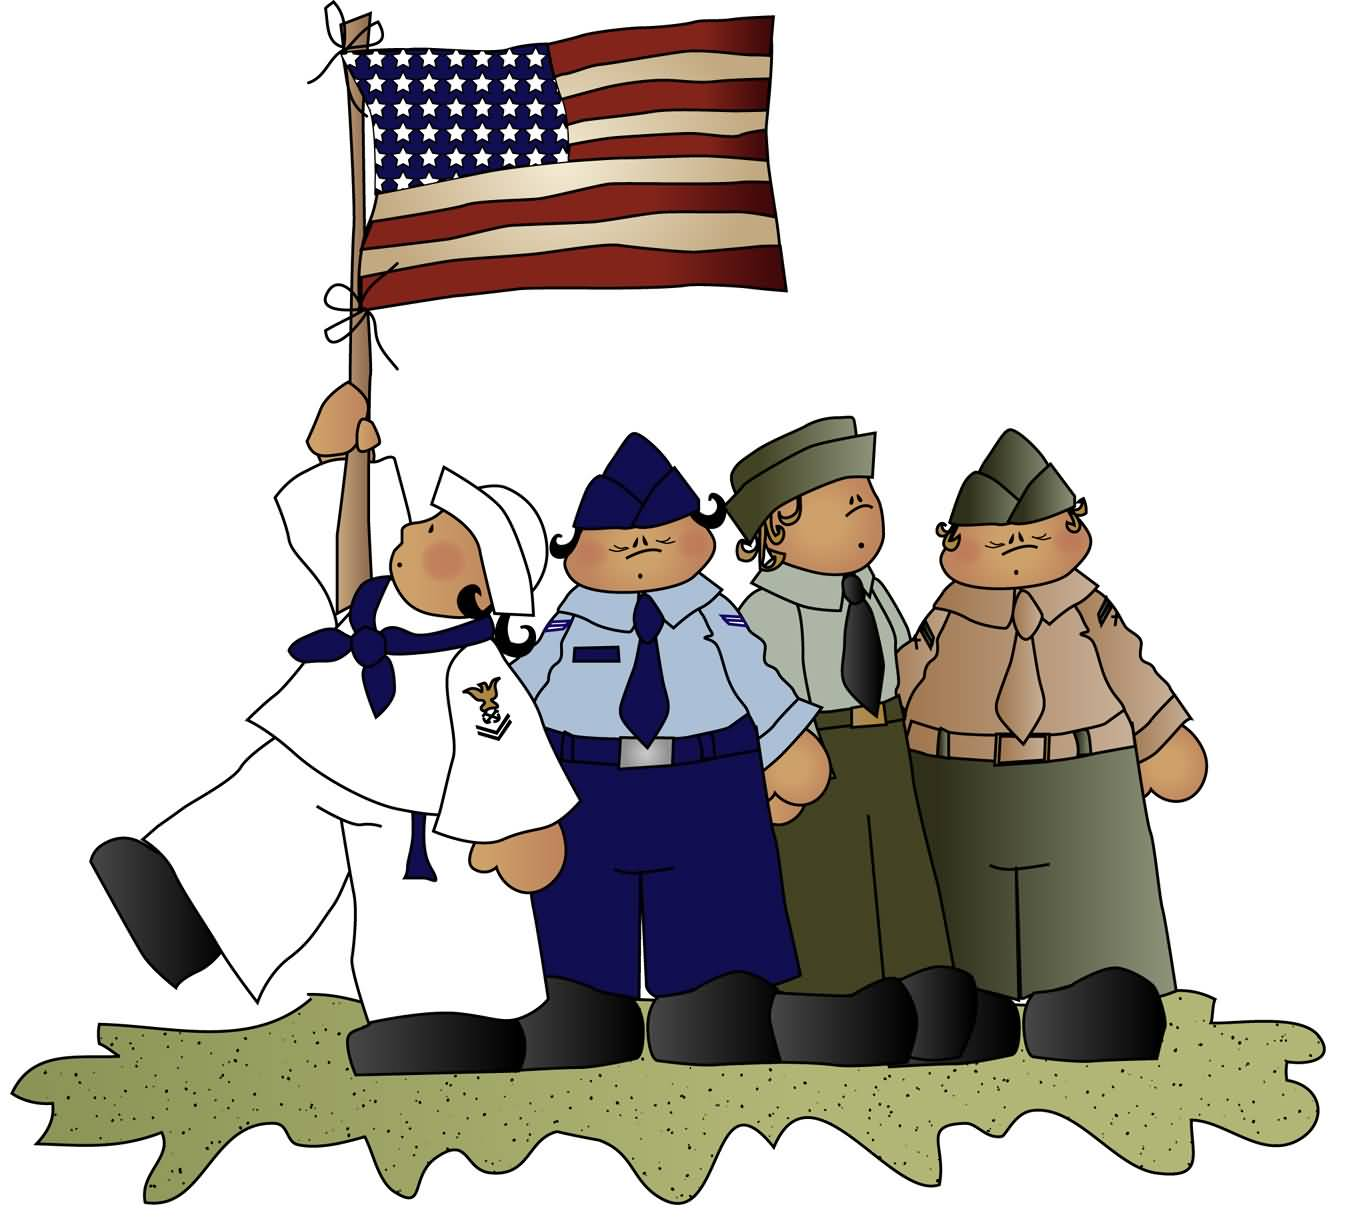 Army clipart veterans day, Army veterans day Transparent.